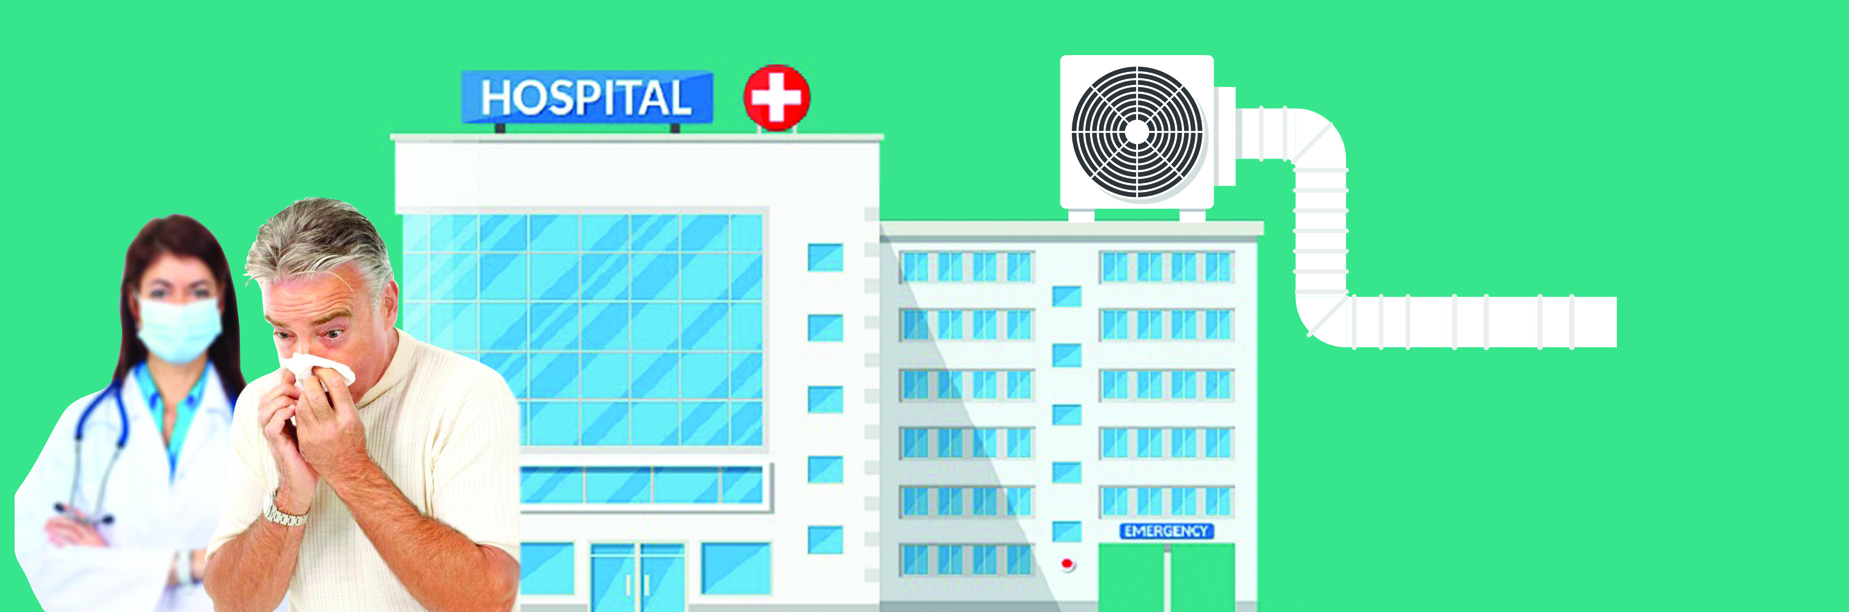 HVAC for healthcare hospitals